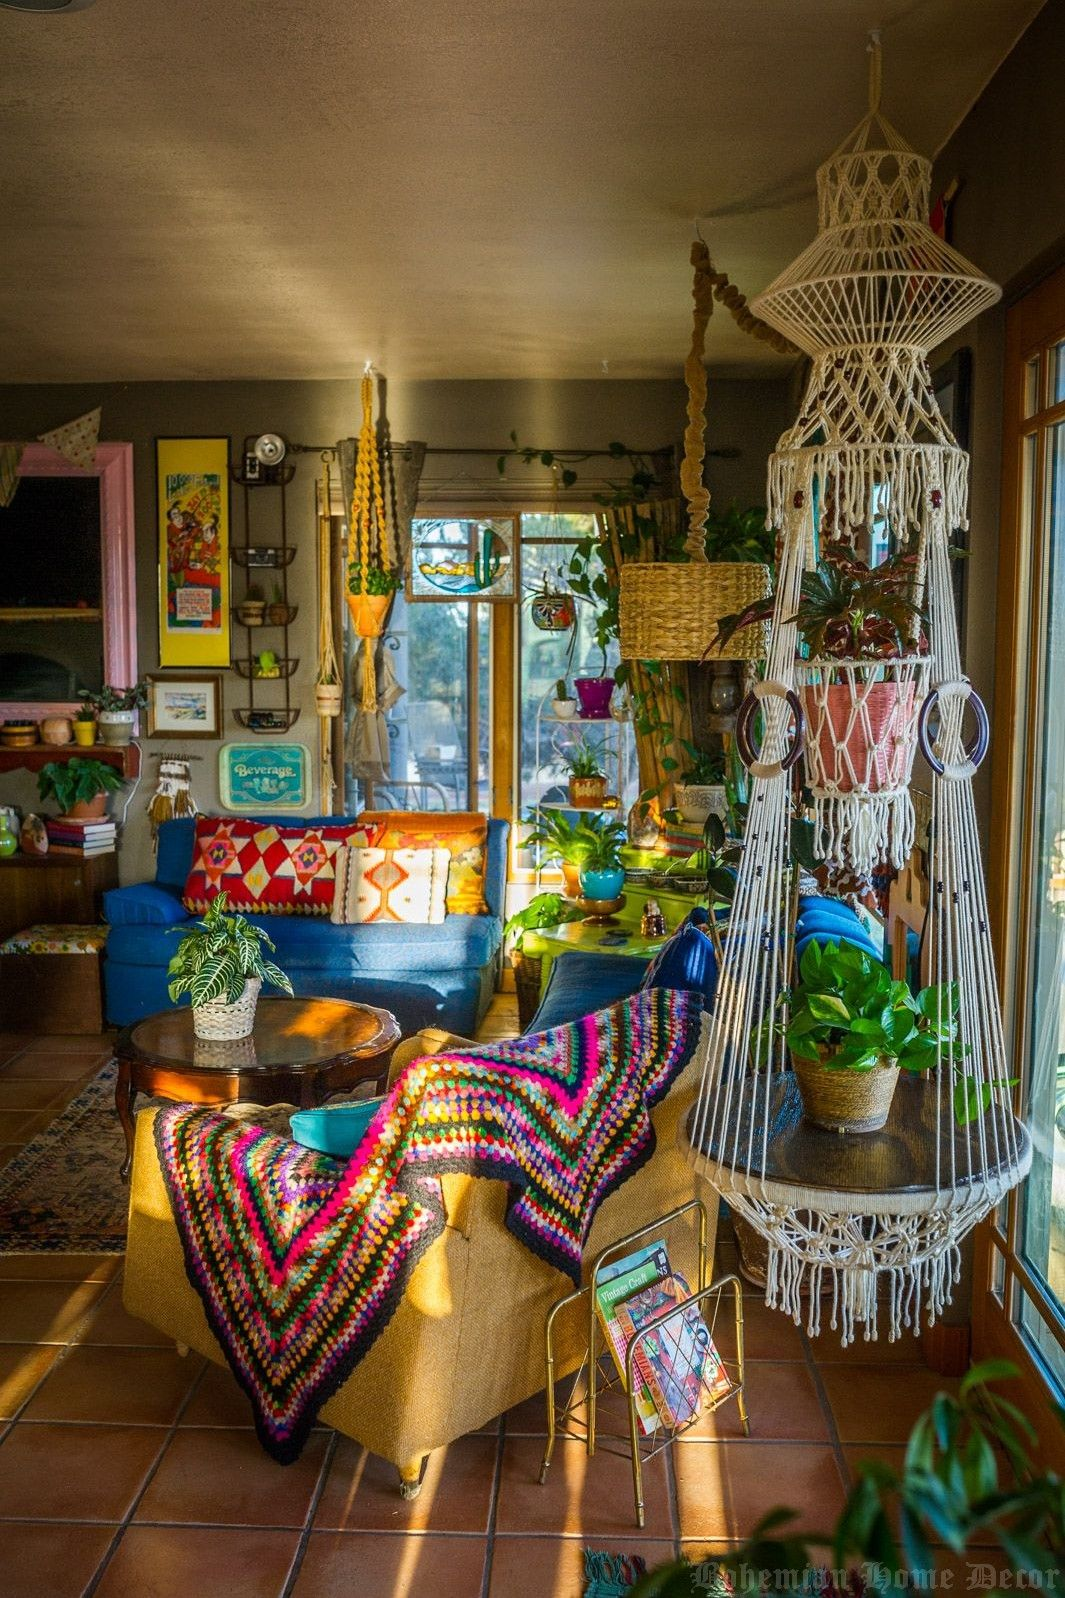 How To Use Bohemian Home Decor To Desire